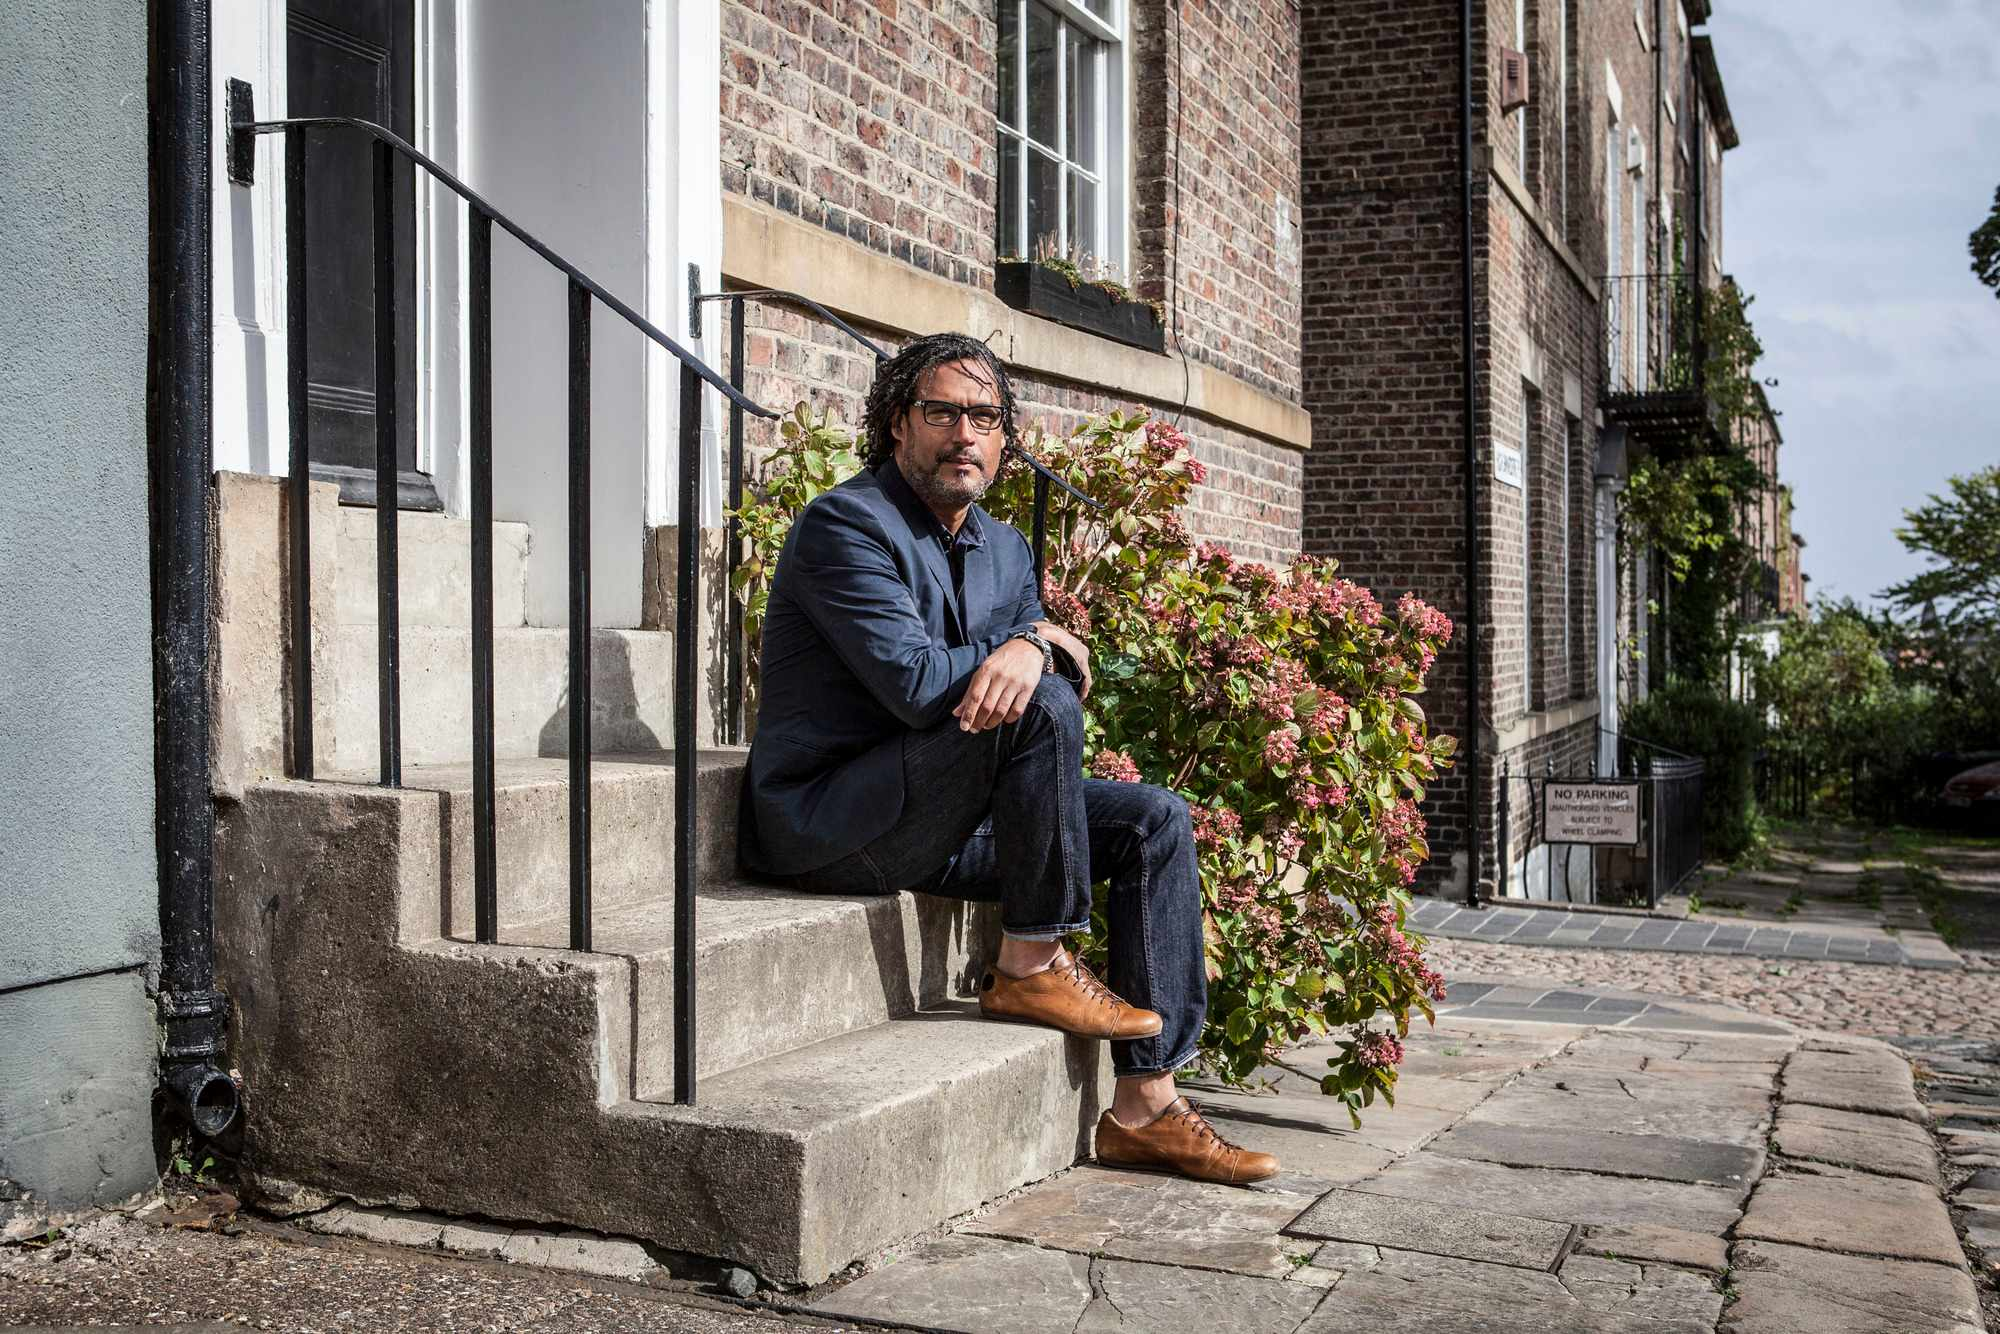 Historian David Olusoga outside Ravensworth Terrace in Newcastle upon Tyne (BBC)